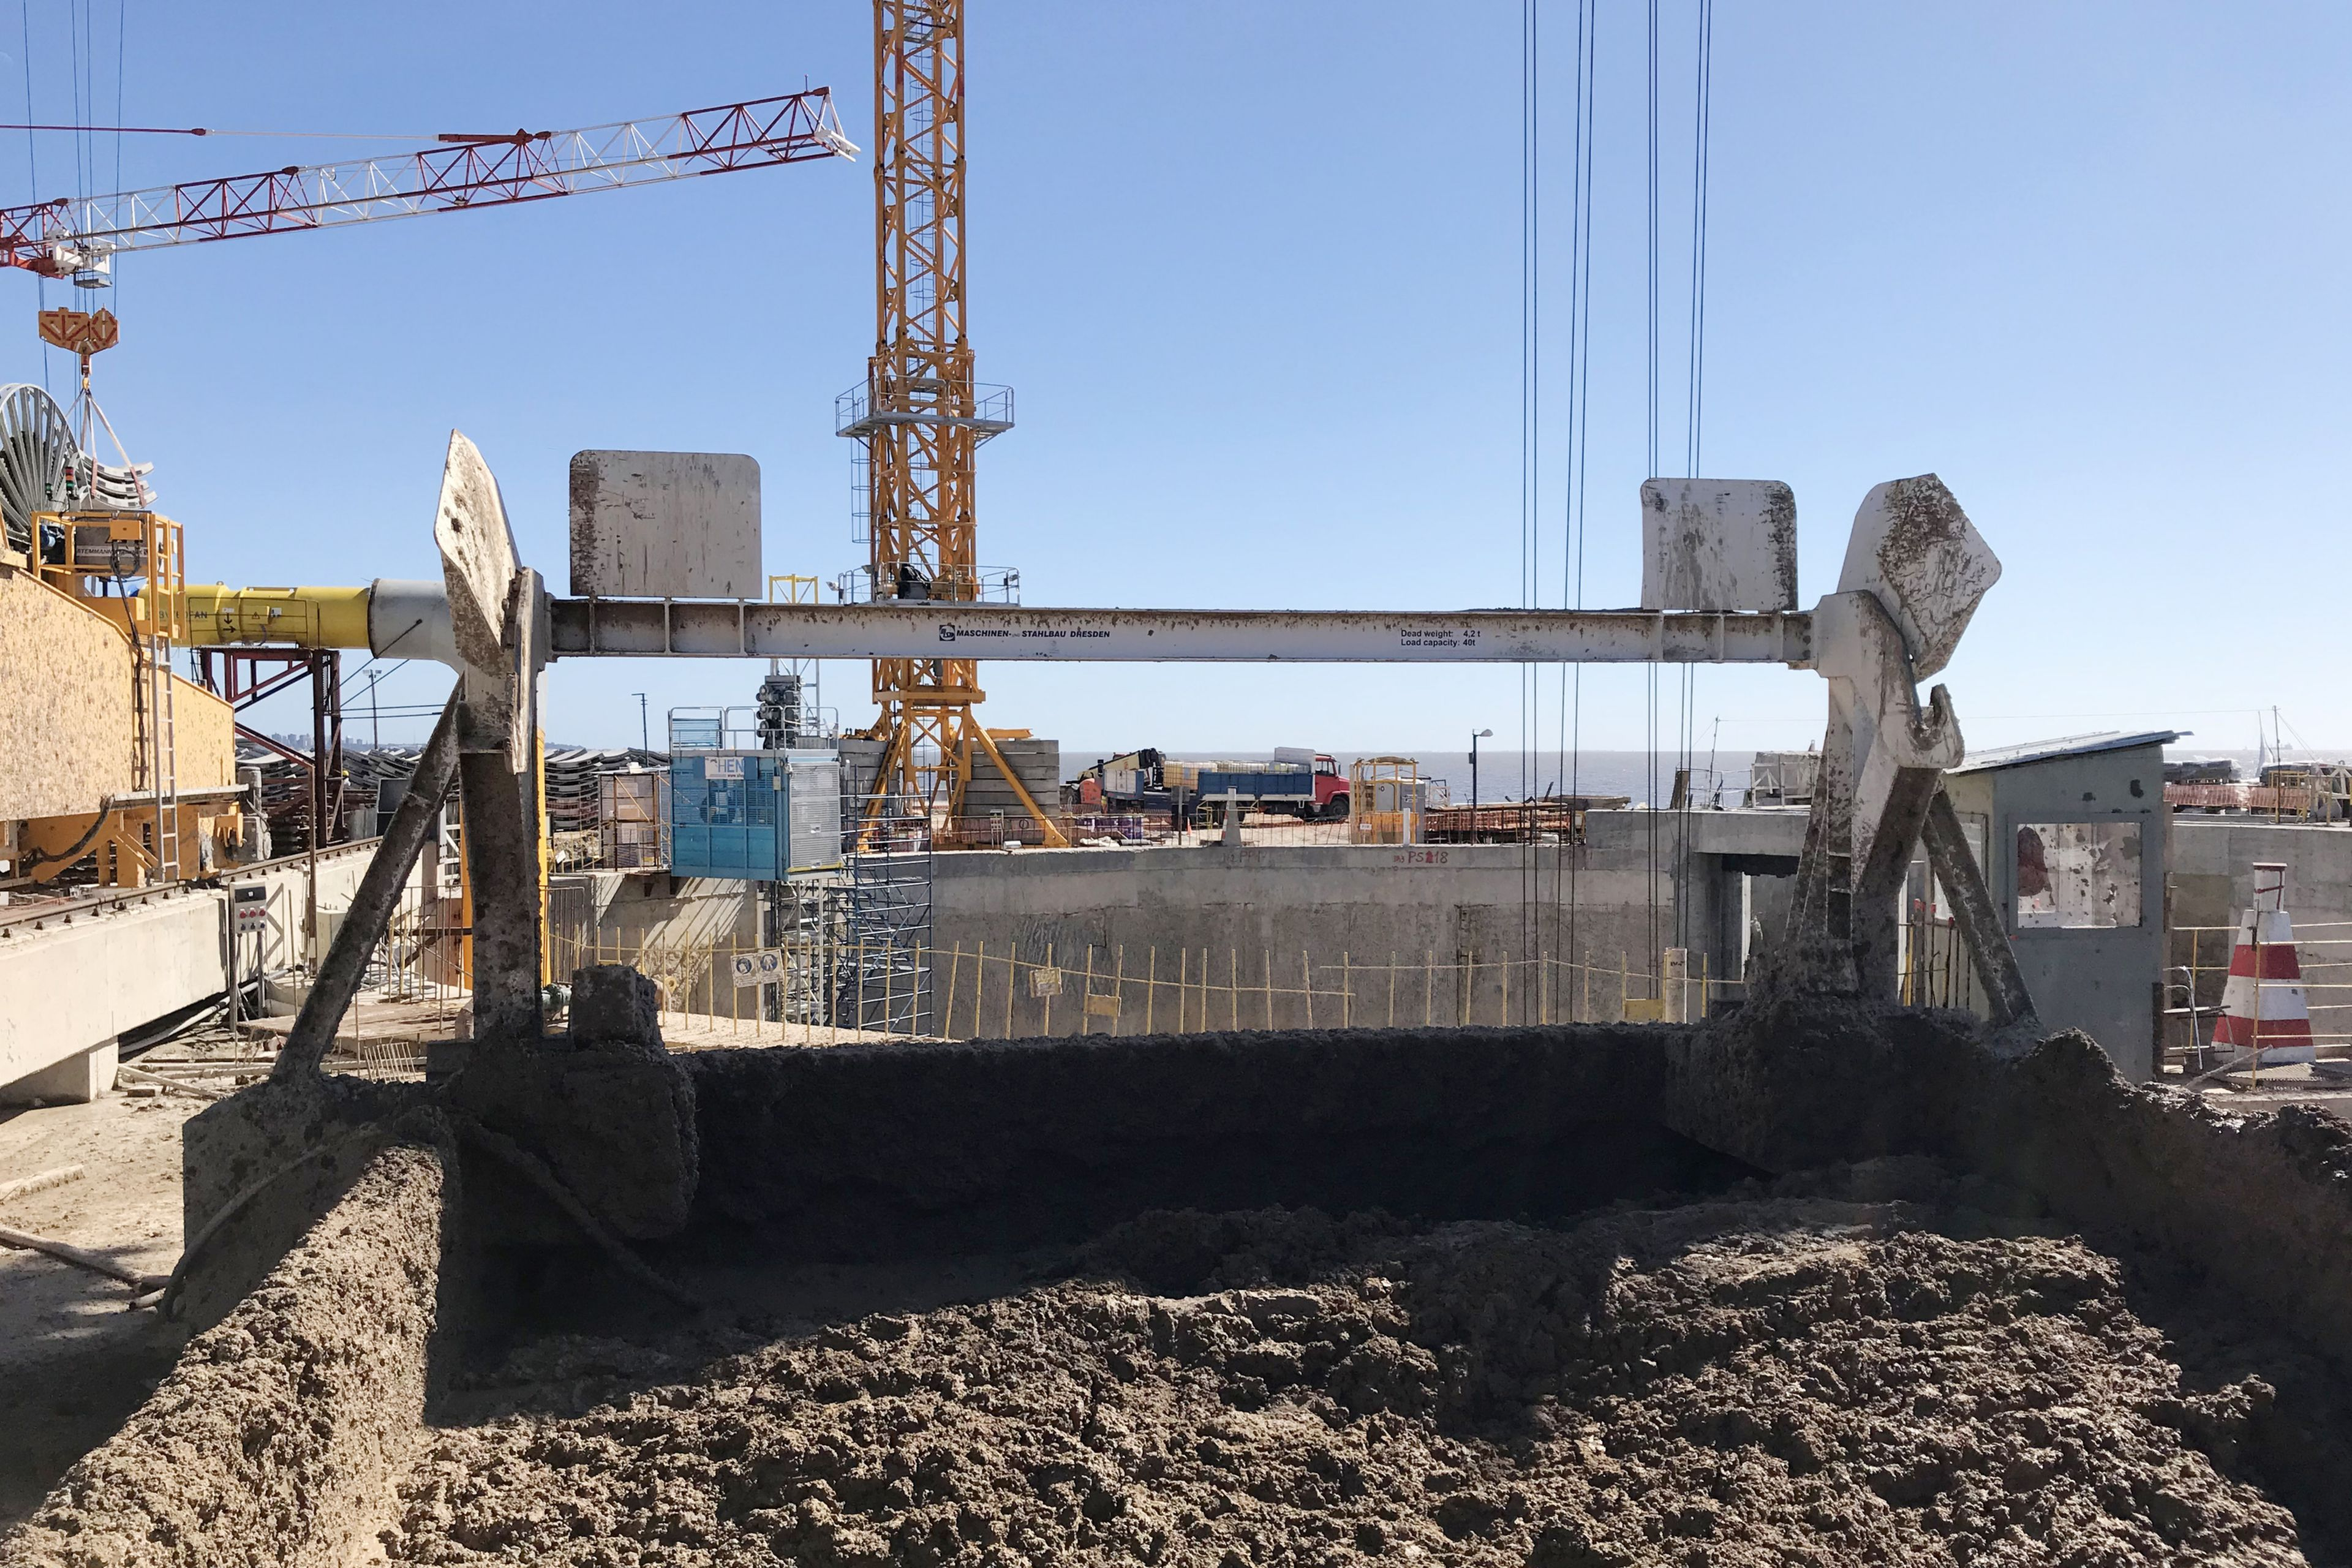 Excavating the  Arroyo - Vega tunnel in Argentina with TBM